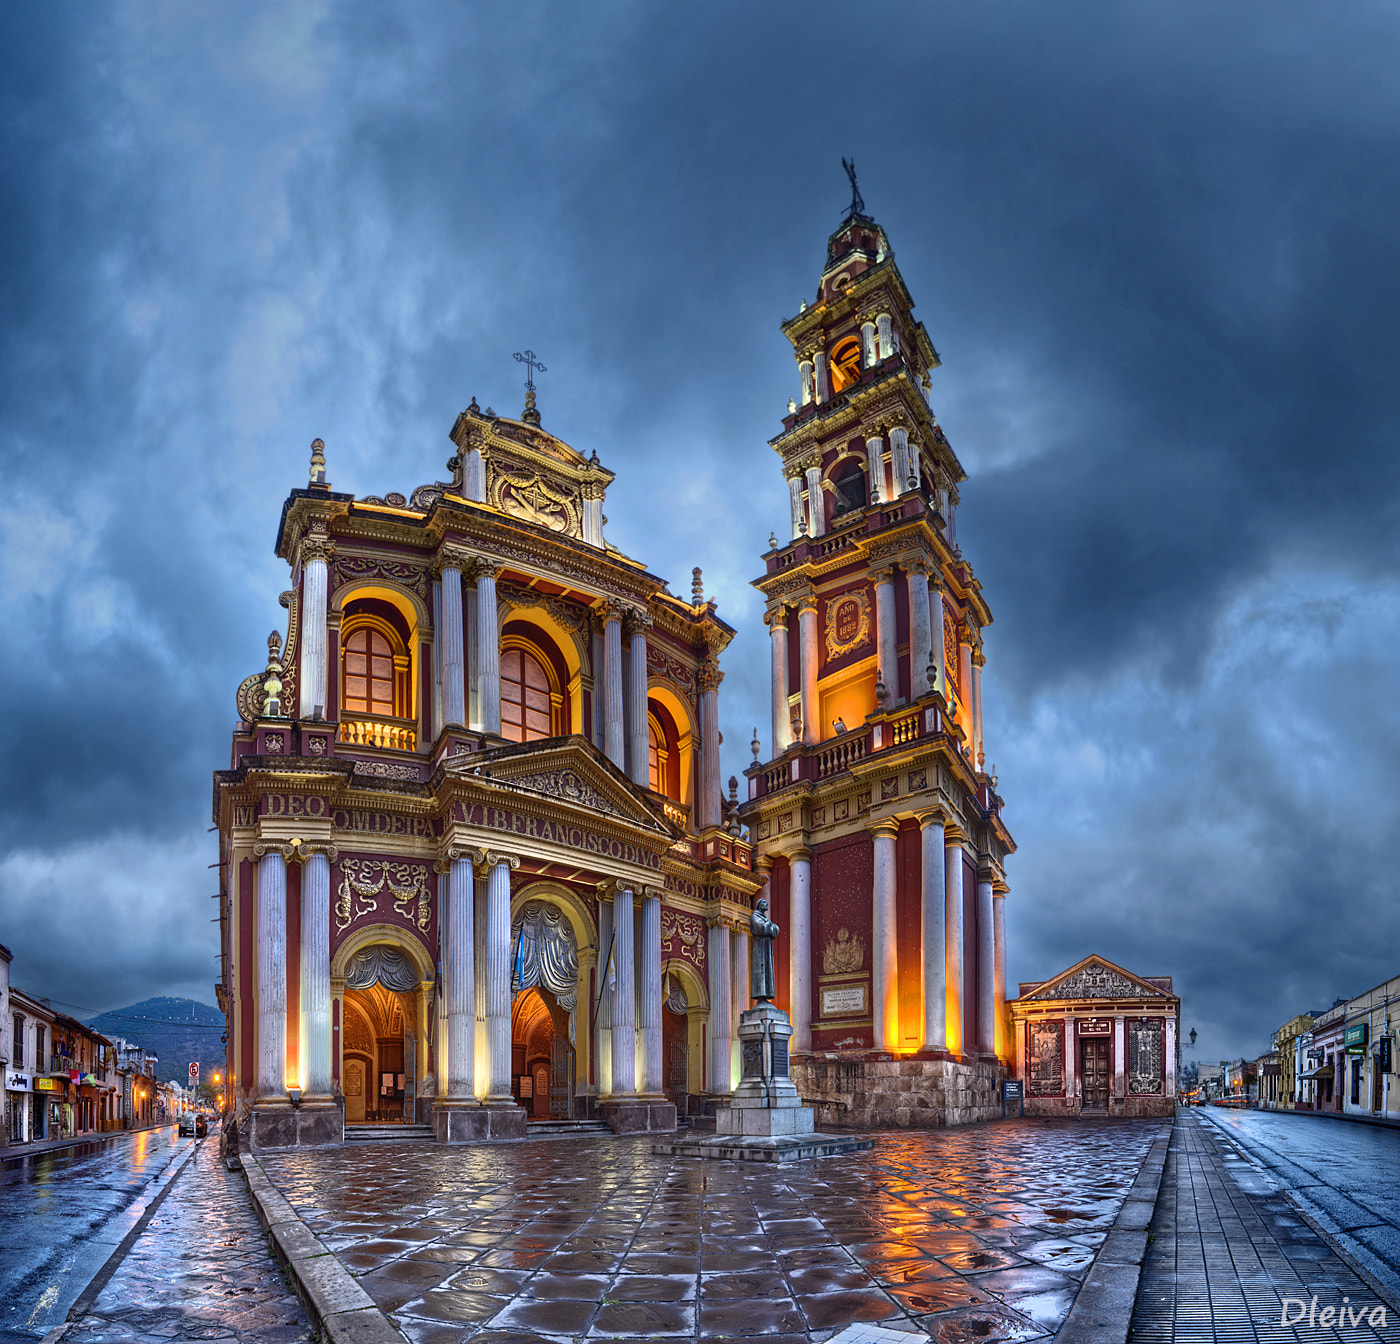 Photograph Church of San Francisco (Salta, Argentina) by Domingo Leiva on 500px